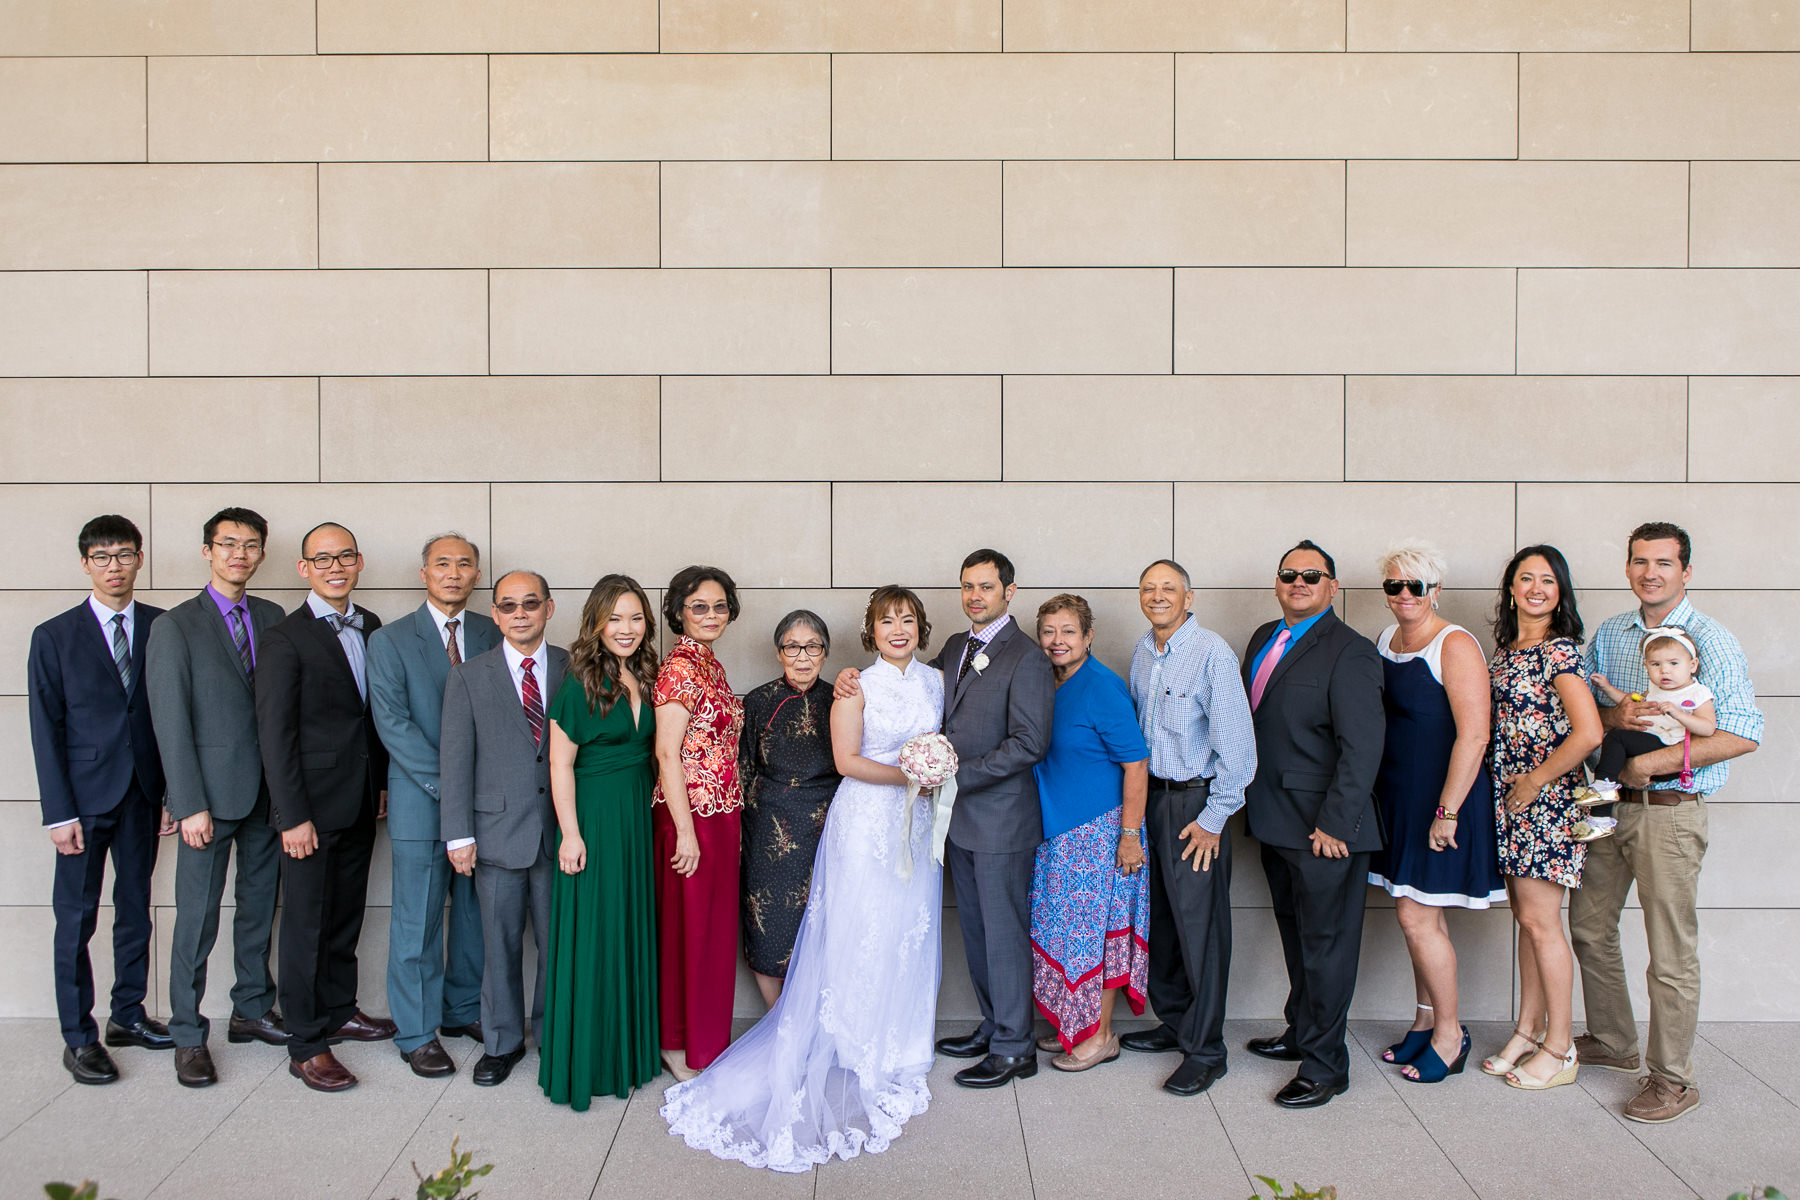 group family photo with bride and groom after wedding in los angeles